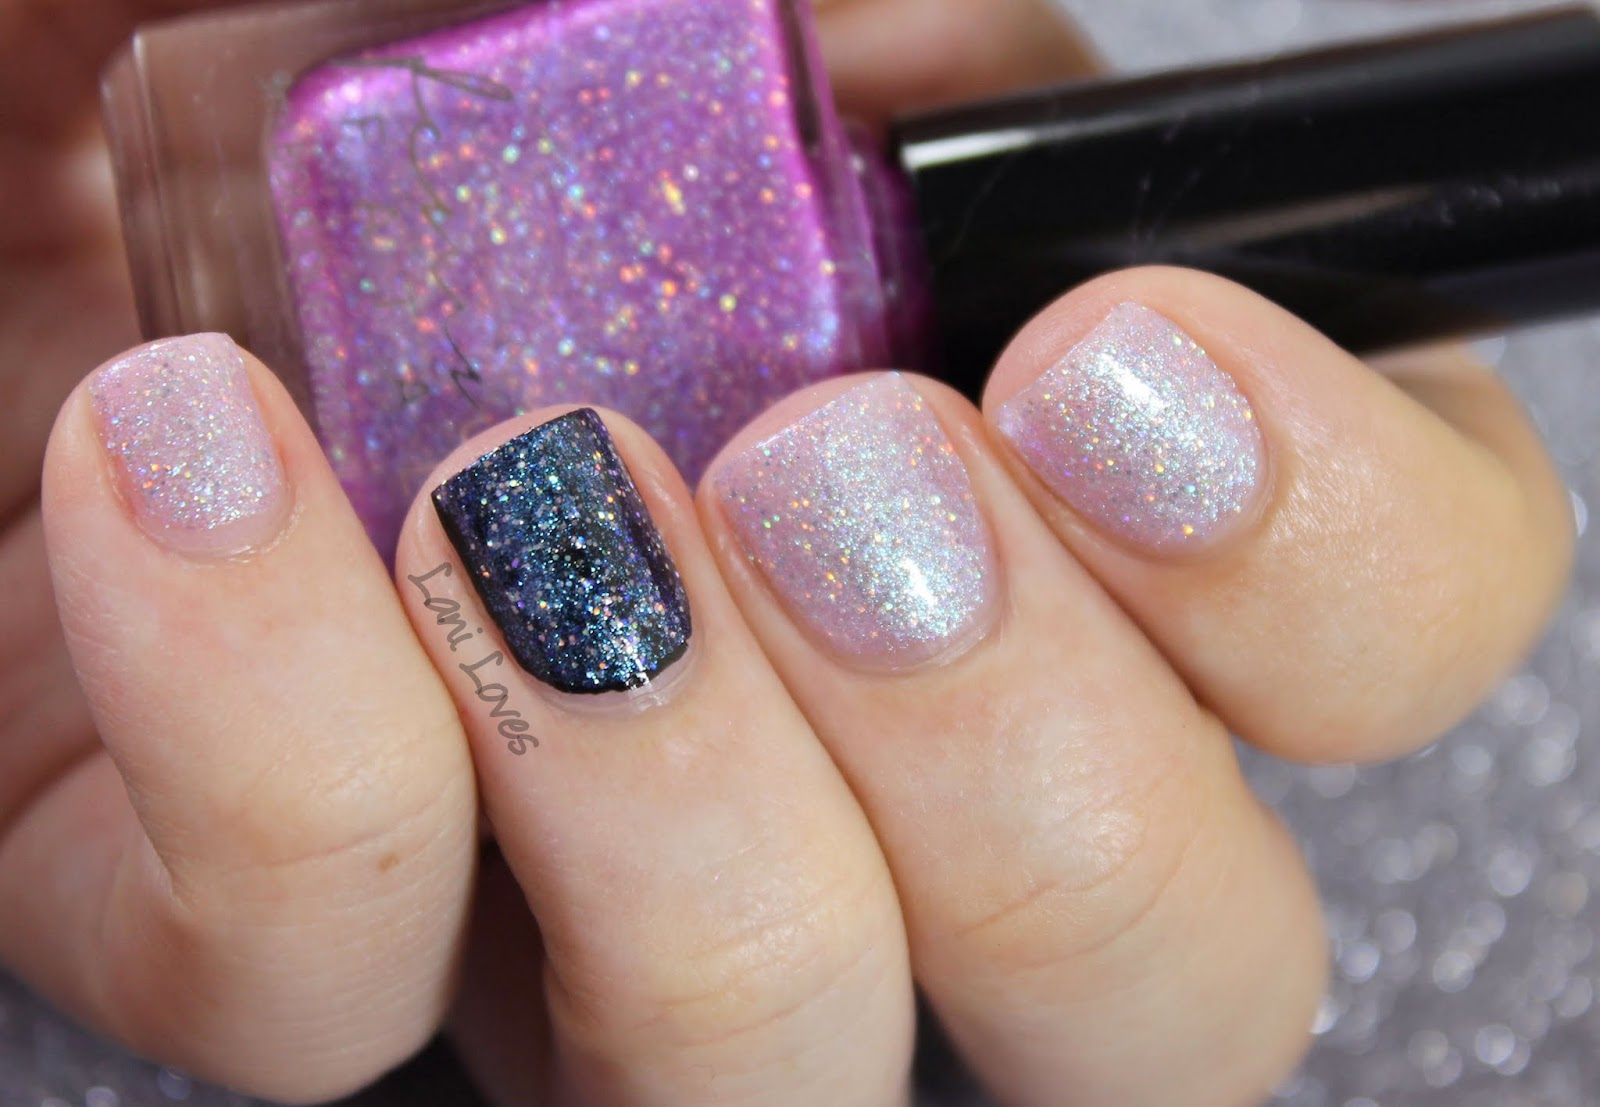 Femme Fatale Cosmetics - Who is Fairest of Them All nail polish swatches & review